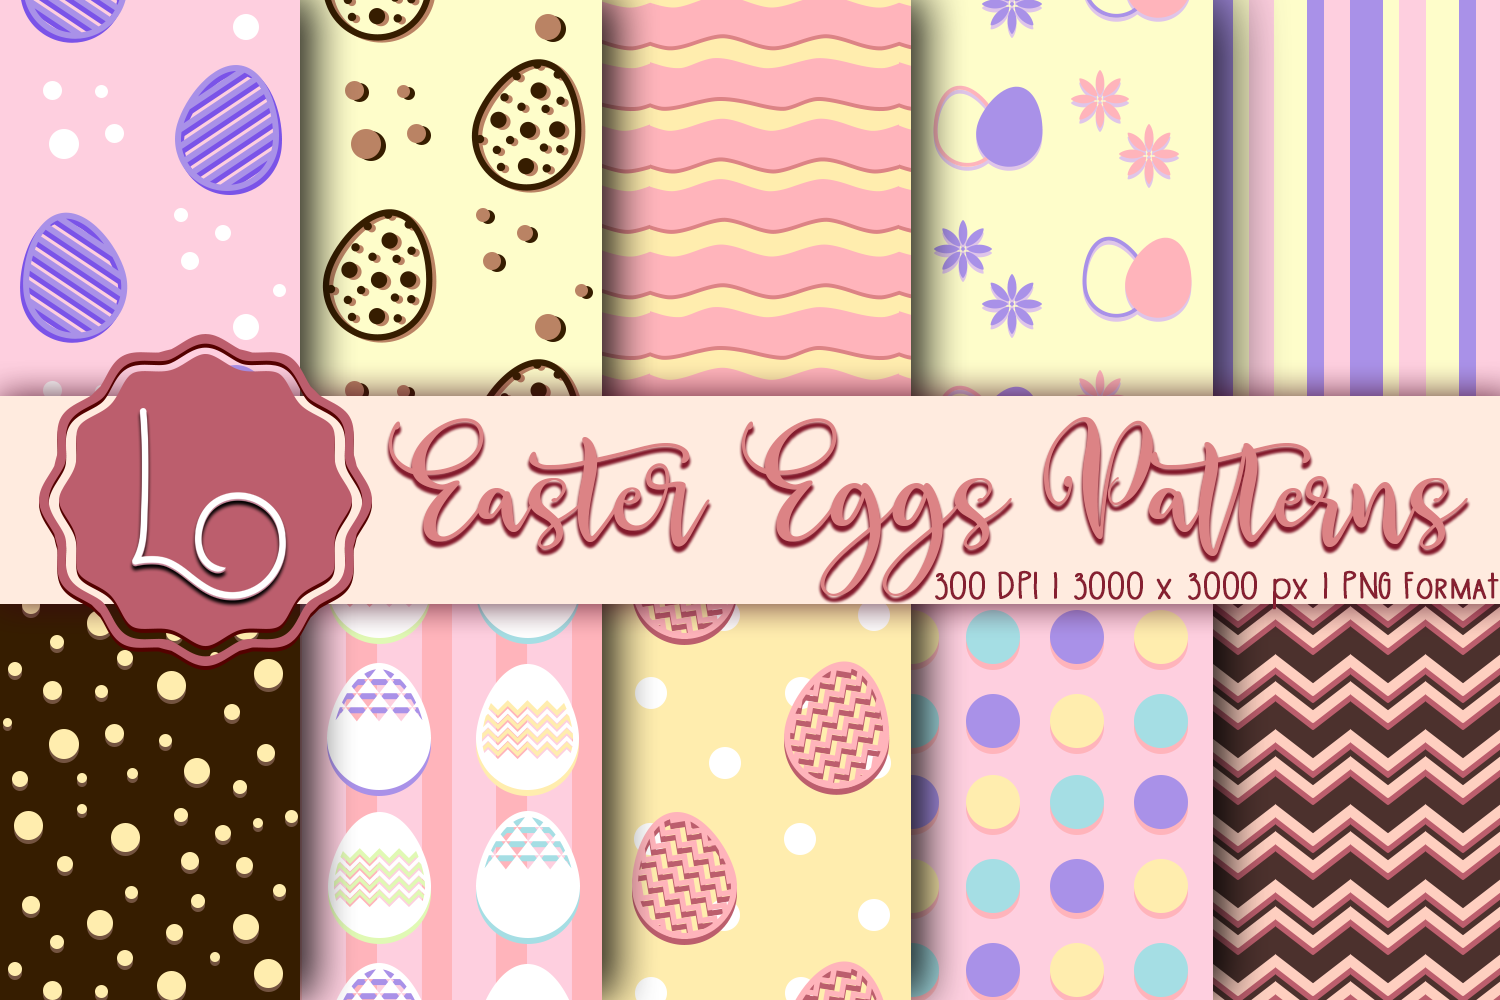 Download Free Easter Eggs Seamless Patterns Graphic By La Oliveira Creative for Cricut Explore, Silhouette and other cutting machines.